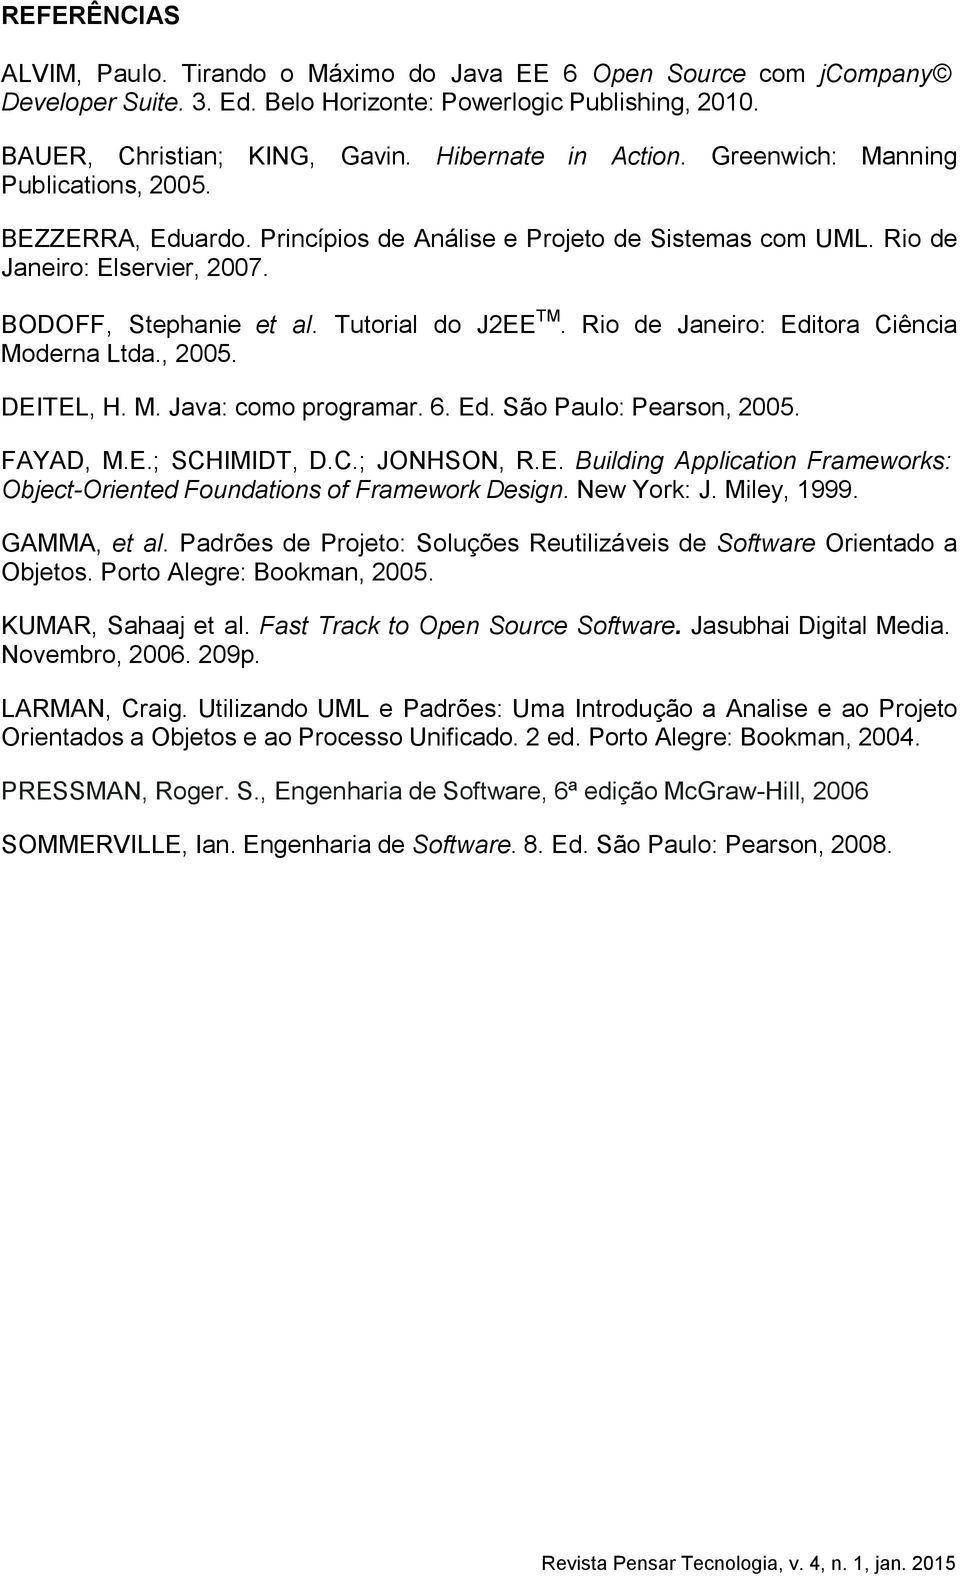 Tutorial do J2EE TM. Rio de Janeiro: Editora Ciência Moderna Ltda., 2005. DEITEL, H. M. Java: como programar. 6. Ed. São Paulo: Pearson, 2005. FAYAD, M.E.; SCHIMIDT, D.C.; JONHSON, R.E. Building Application Frameworks: Object-Oriented Foundations of Framework Design.